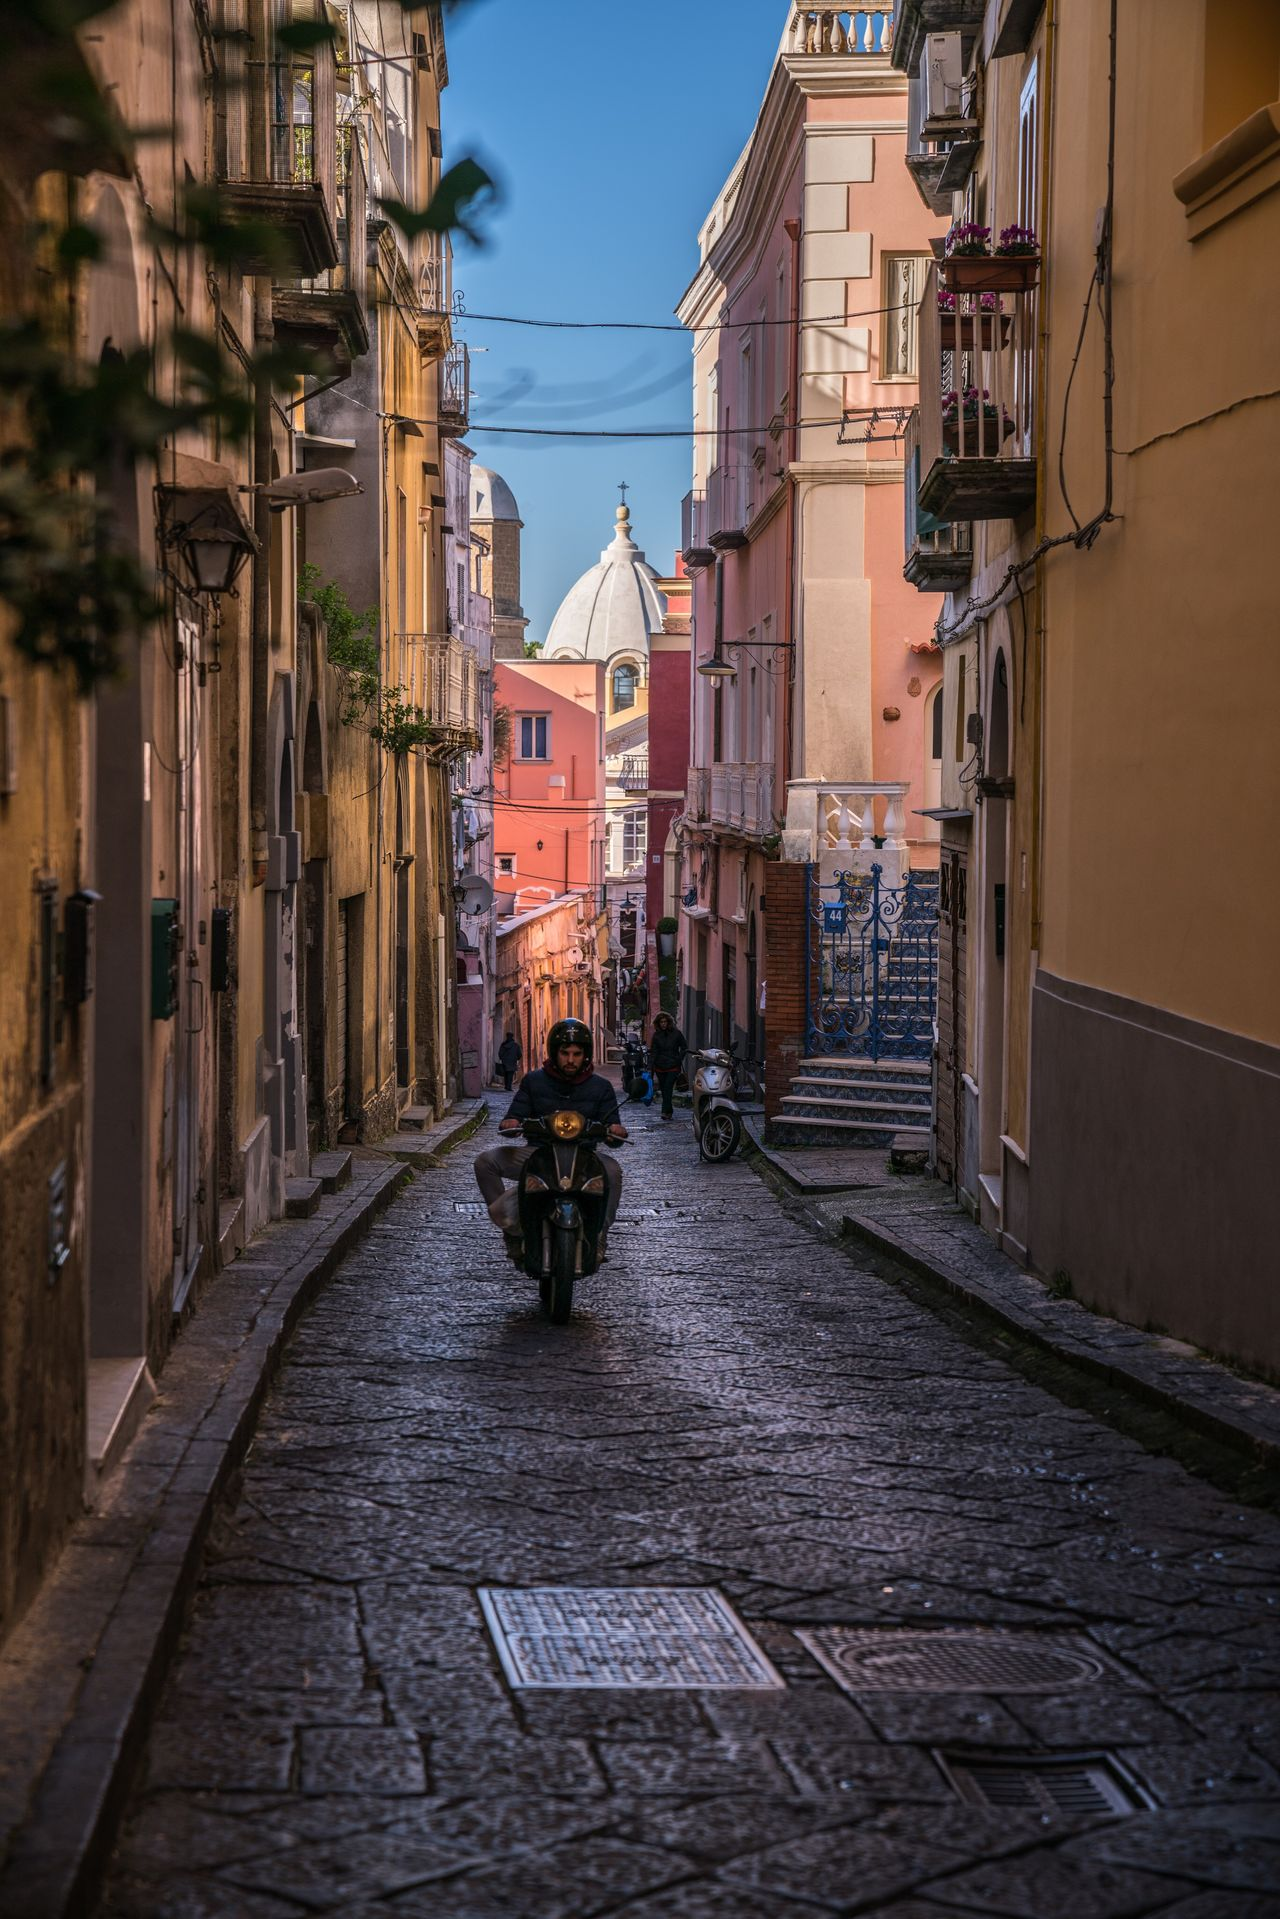 On the road again. Building Exterior Architecture Built Structure City Outdoors The Way Forward Day Vespa Procida Naples Napoli Bella Italia Italy Italia Italy❤️ Colorful Colors Cobblestone People People Watching Travel Destinations Streetphotography Street Travel Photography Travel